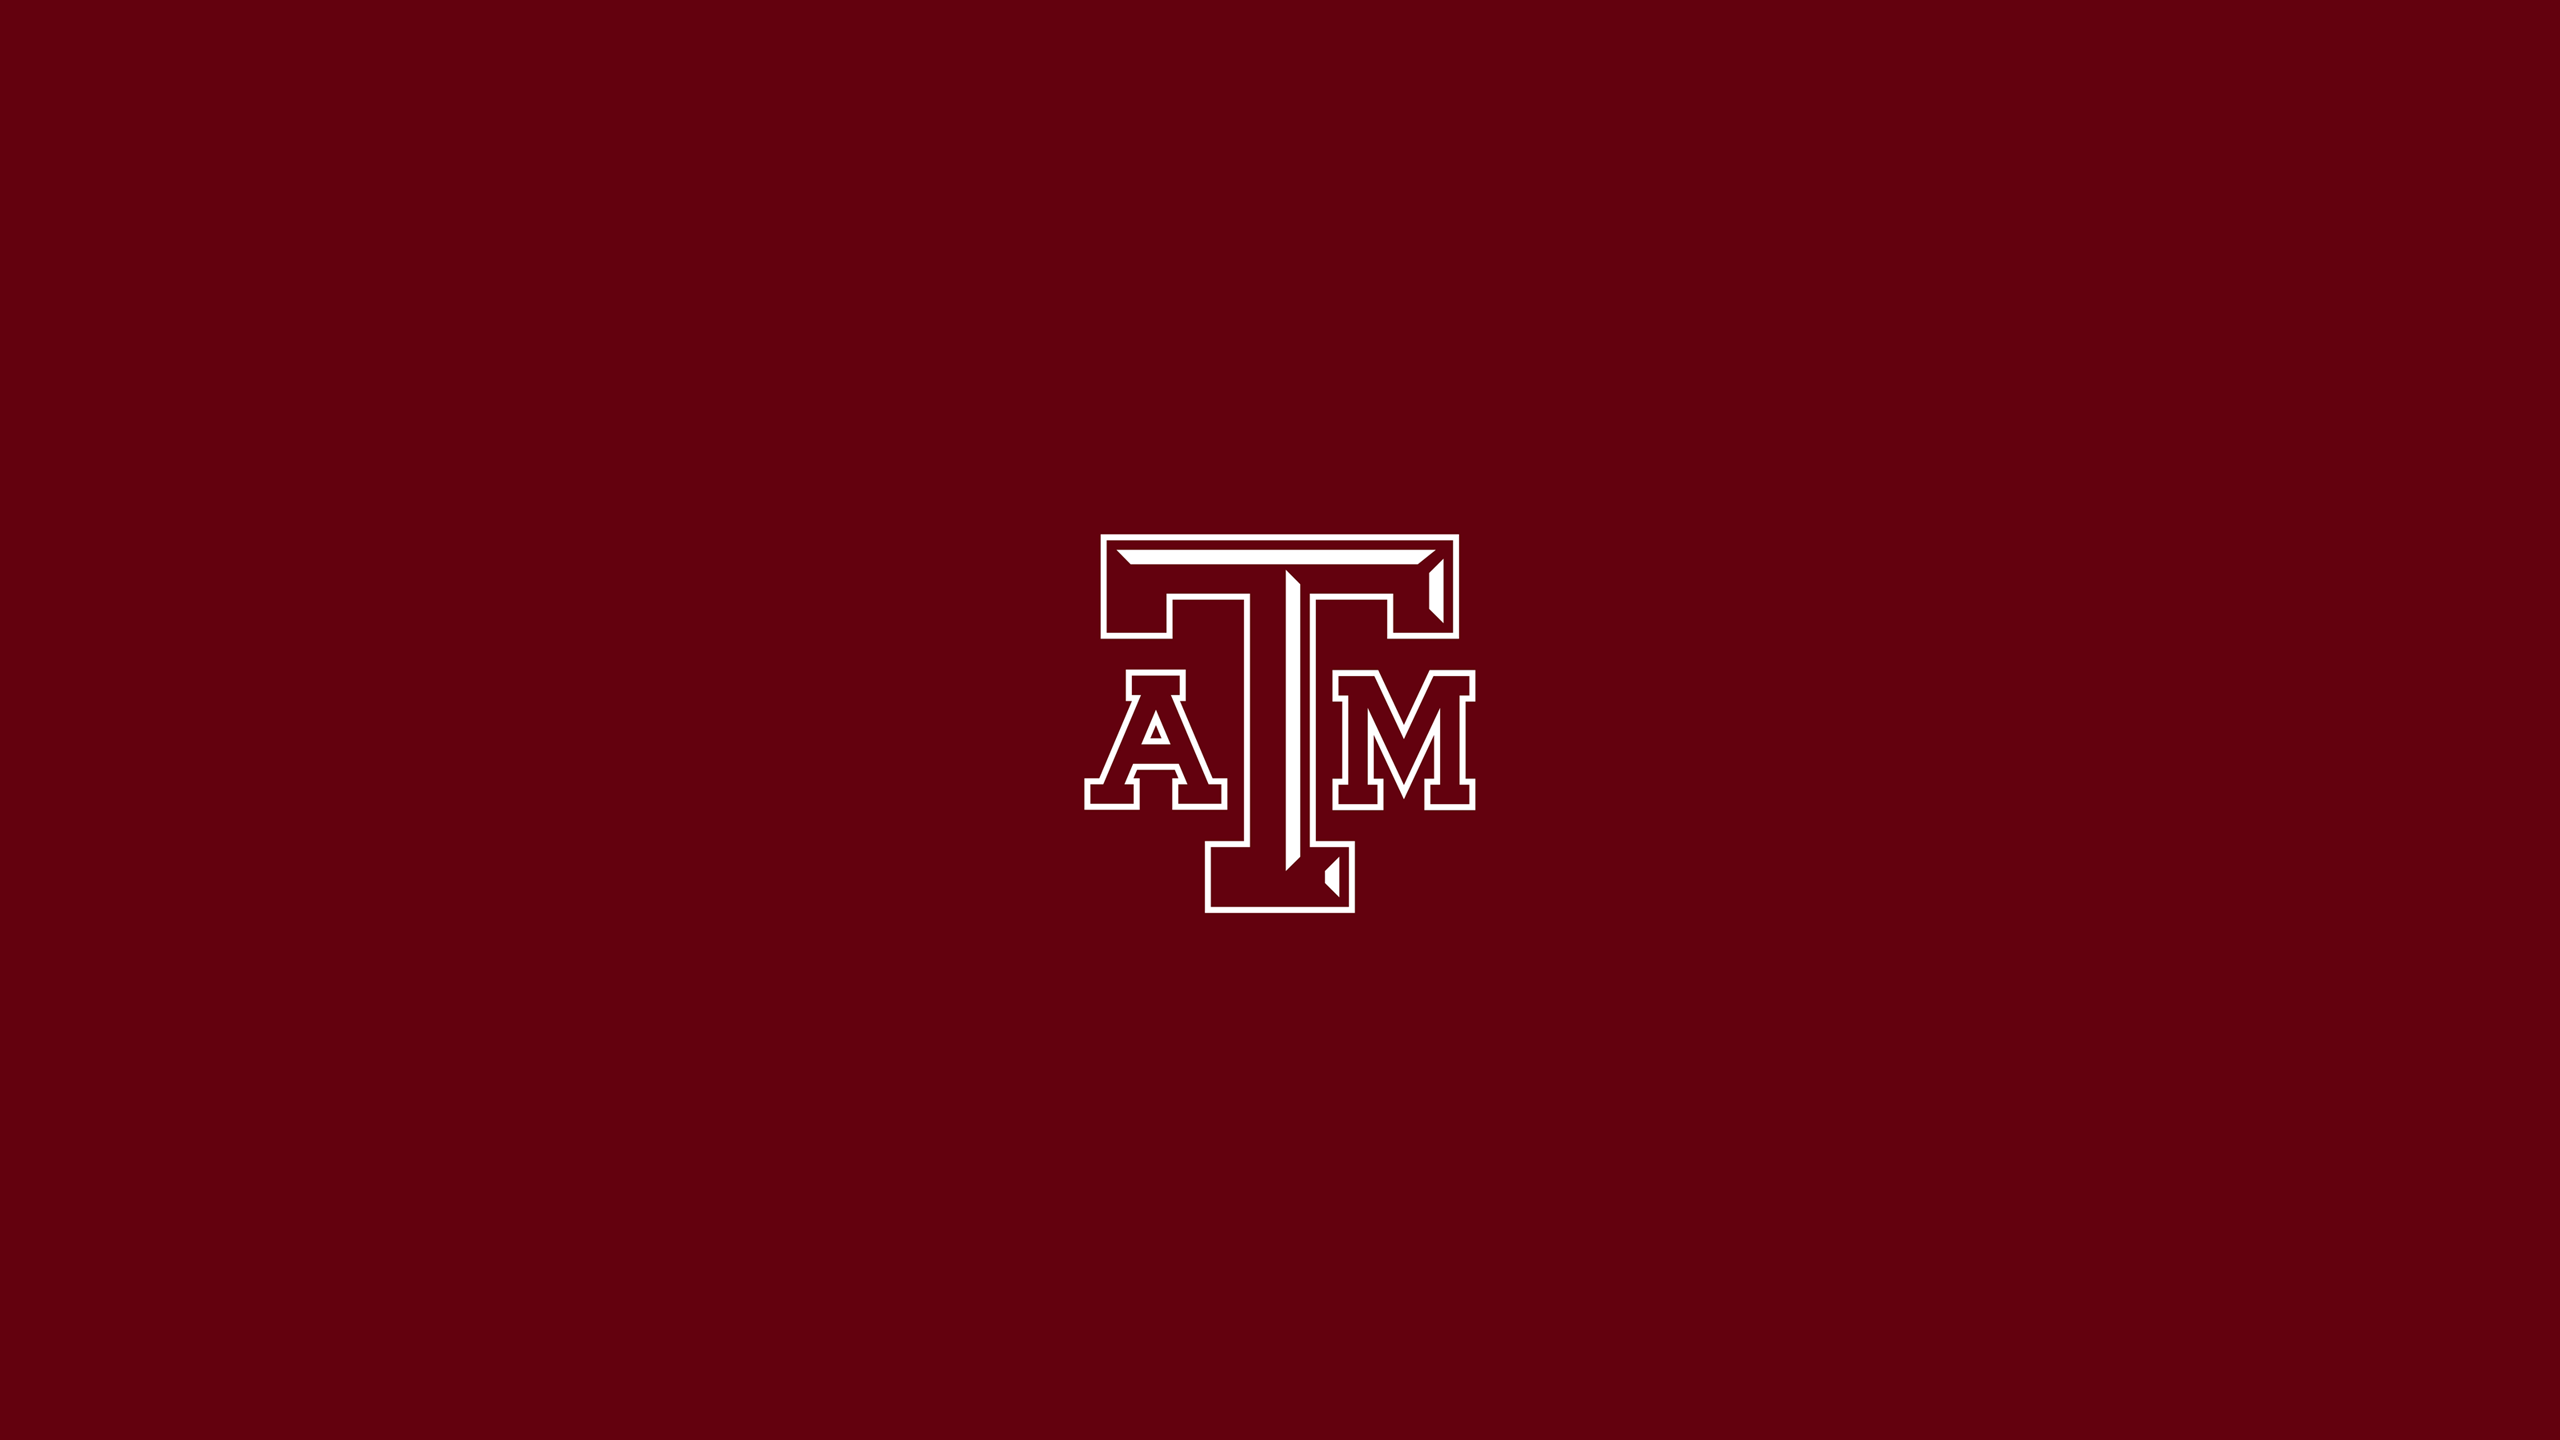 Texas A&M University Aggies